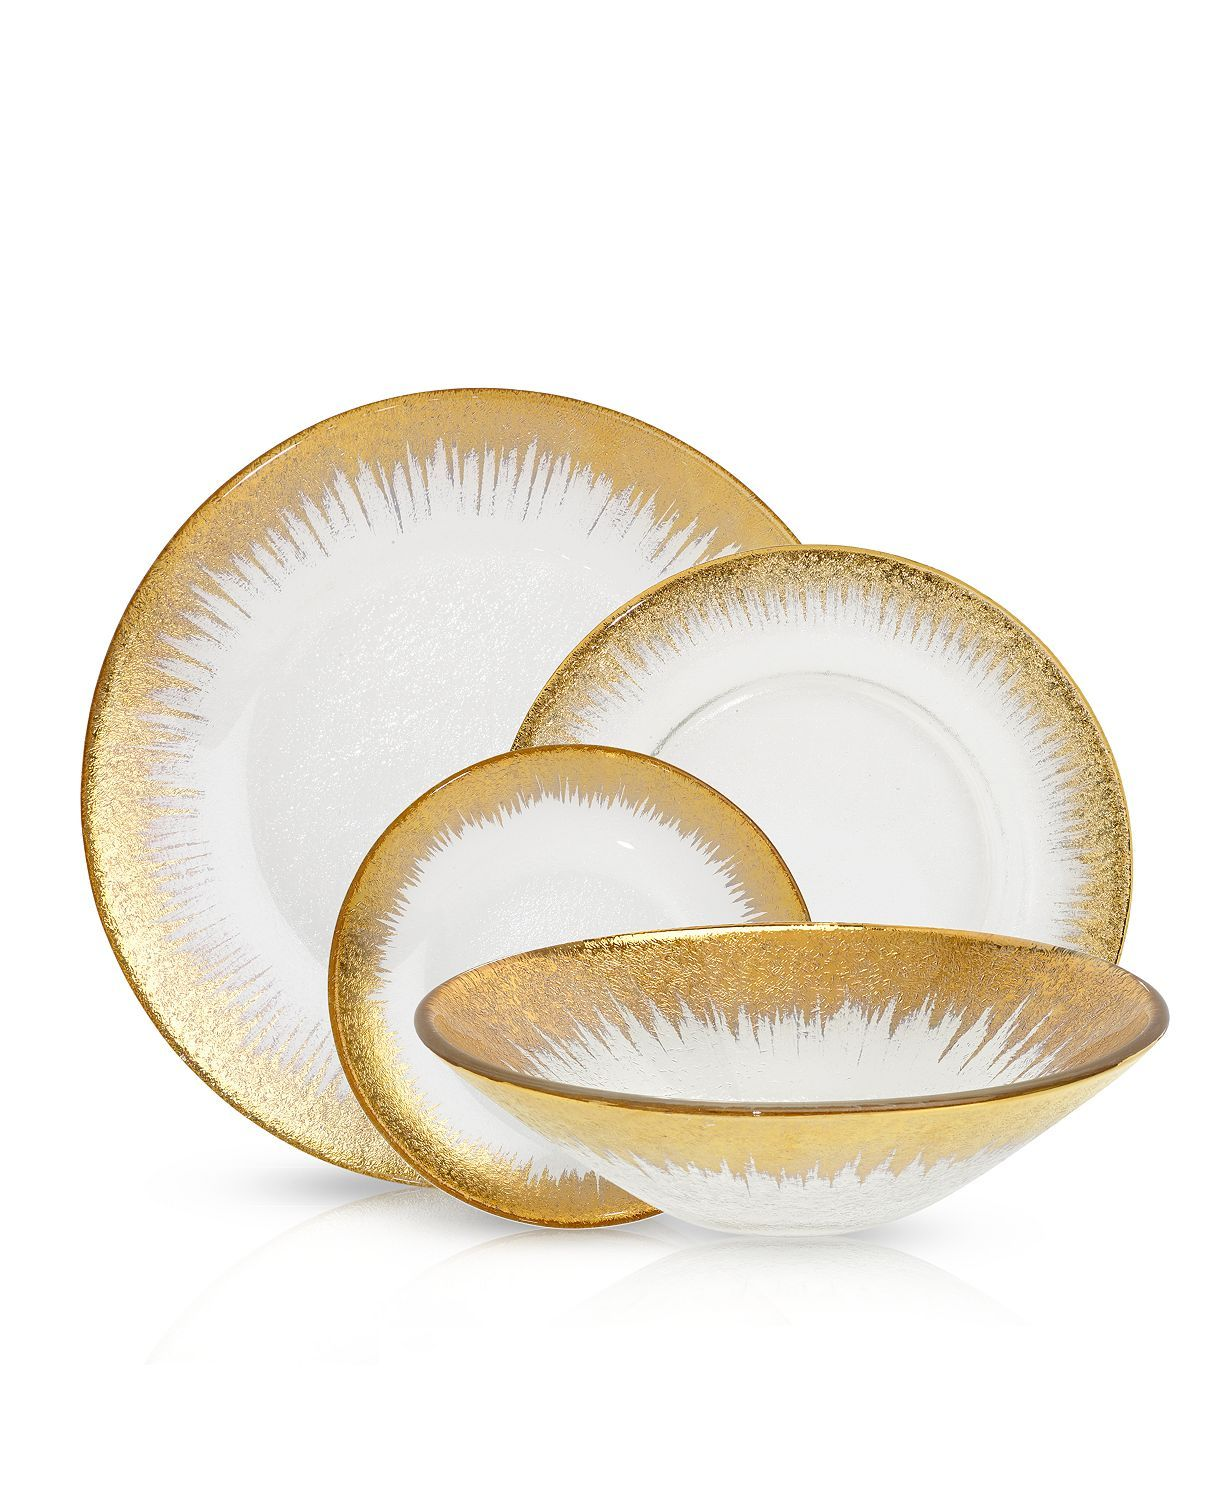 Villeroy Boch Belissimo Dinnerware Collection 100 Exclusive Dining Entertaining Dinnerware Bloomingdale S Gold Dinnerware Elegant Dinnerware Dinnerware